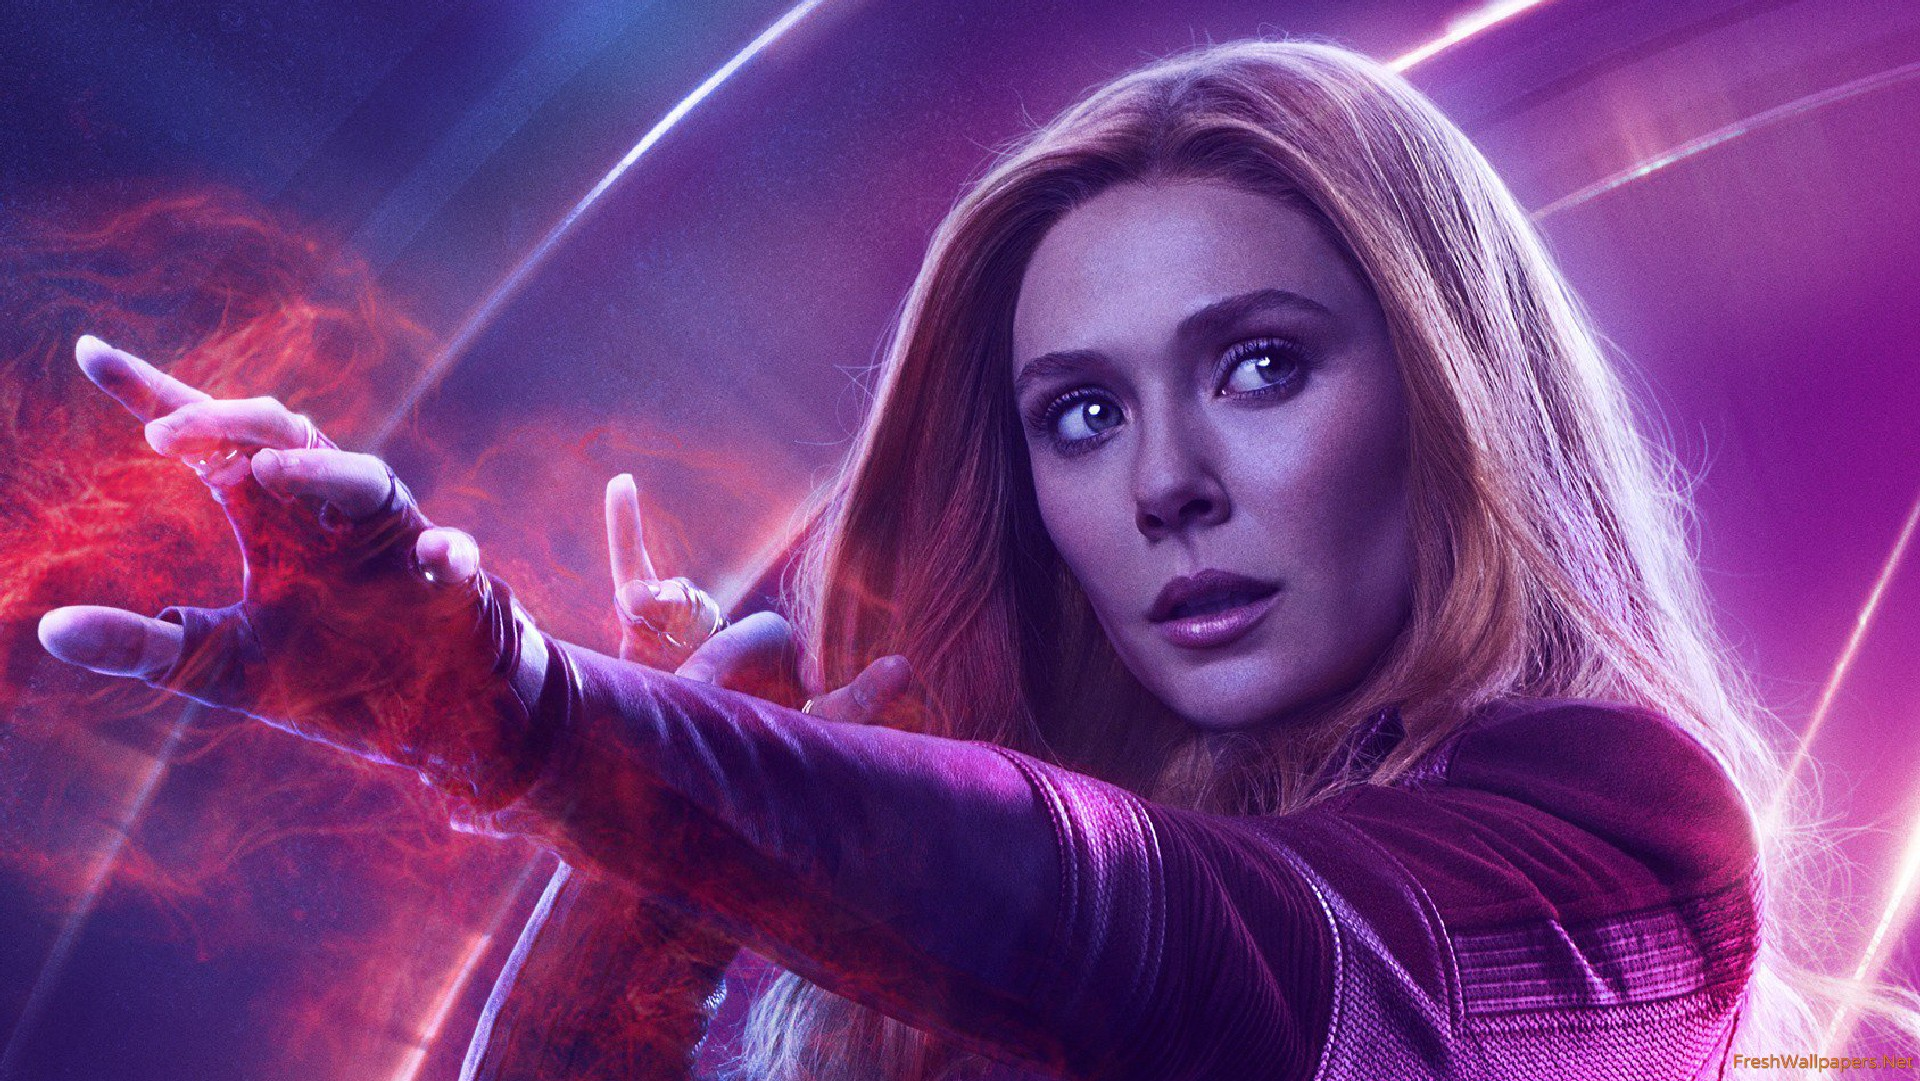 Wanda Maximoff In Avengers Infinity War New Poster wallpaper